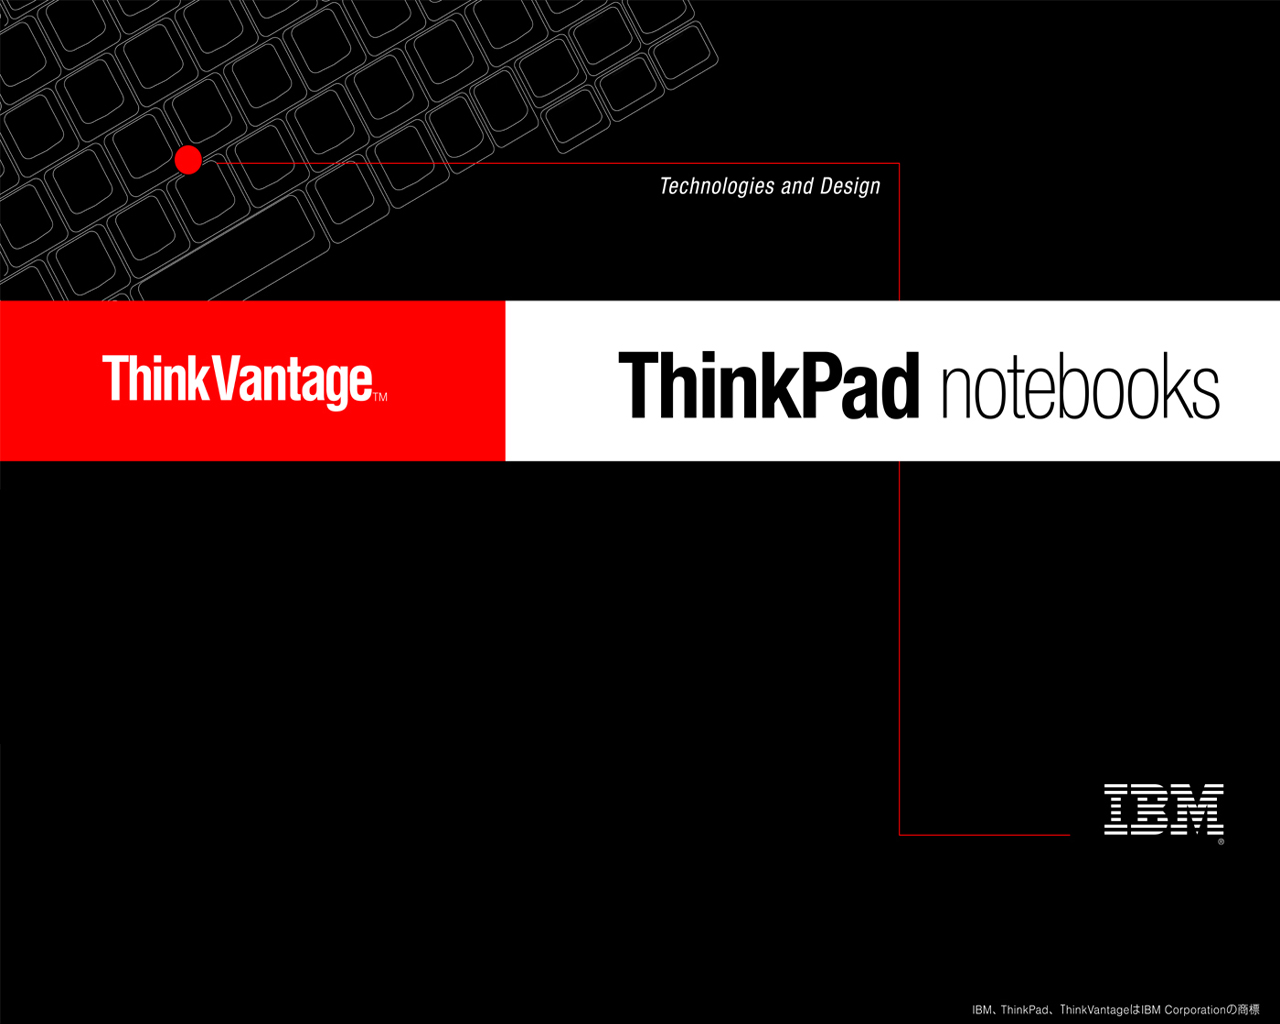 1280x1024 ibm think vantage desktop pc and mac wallpaper gumiabroncs